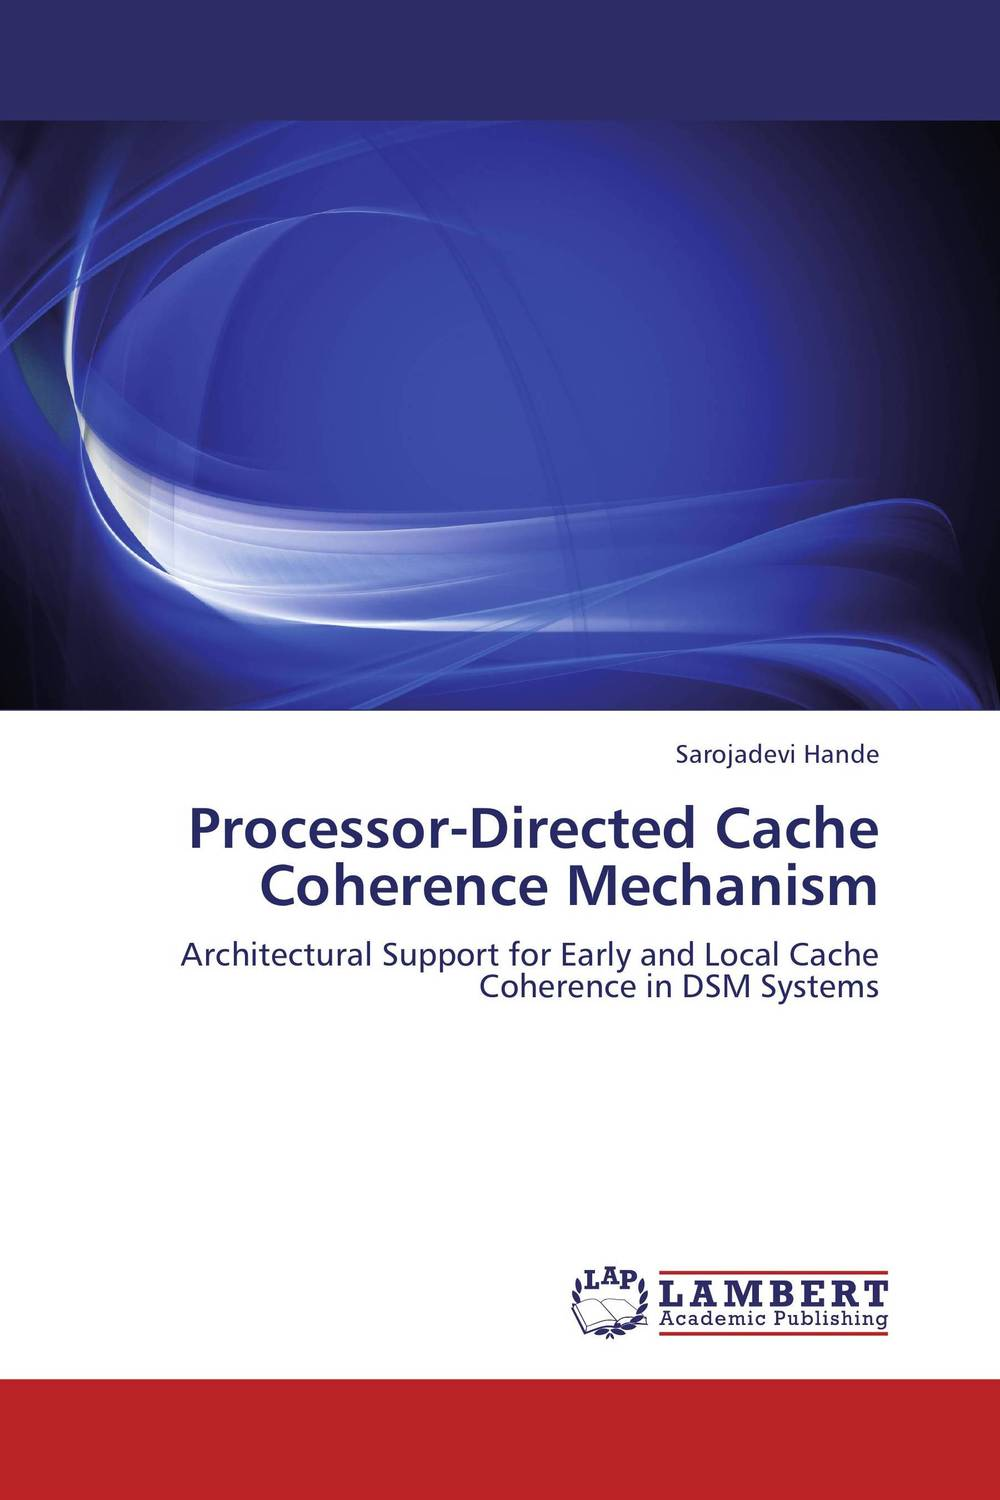 Processor-Directed Cache Coherence Mechanism the role of evaluation as a mechanism for advancing principal practice